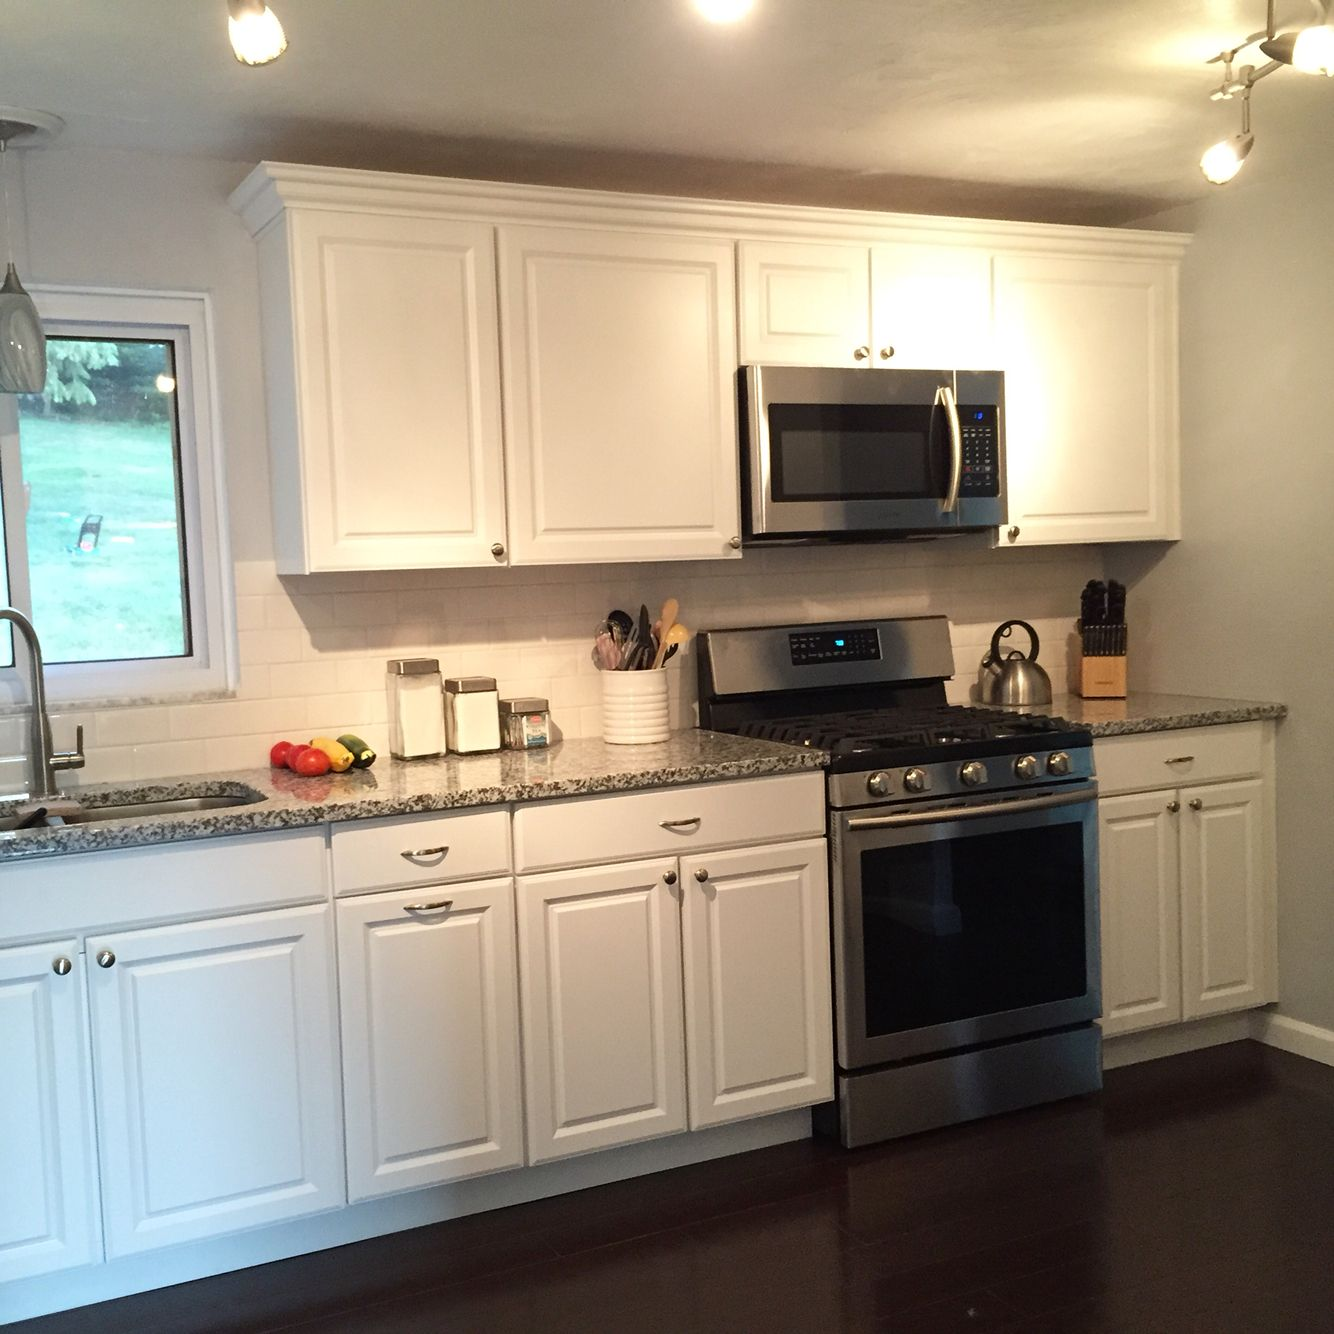 Loving Our White Cabinets, Luna Pearl Granite Countertops